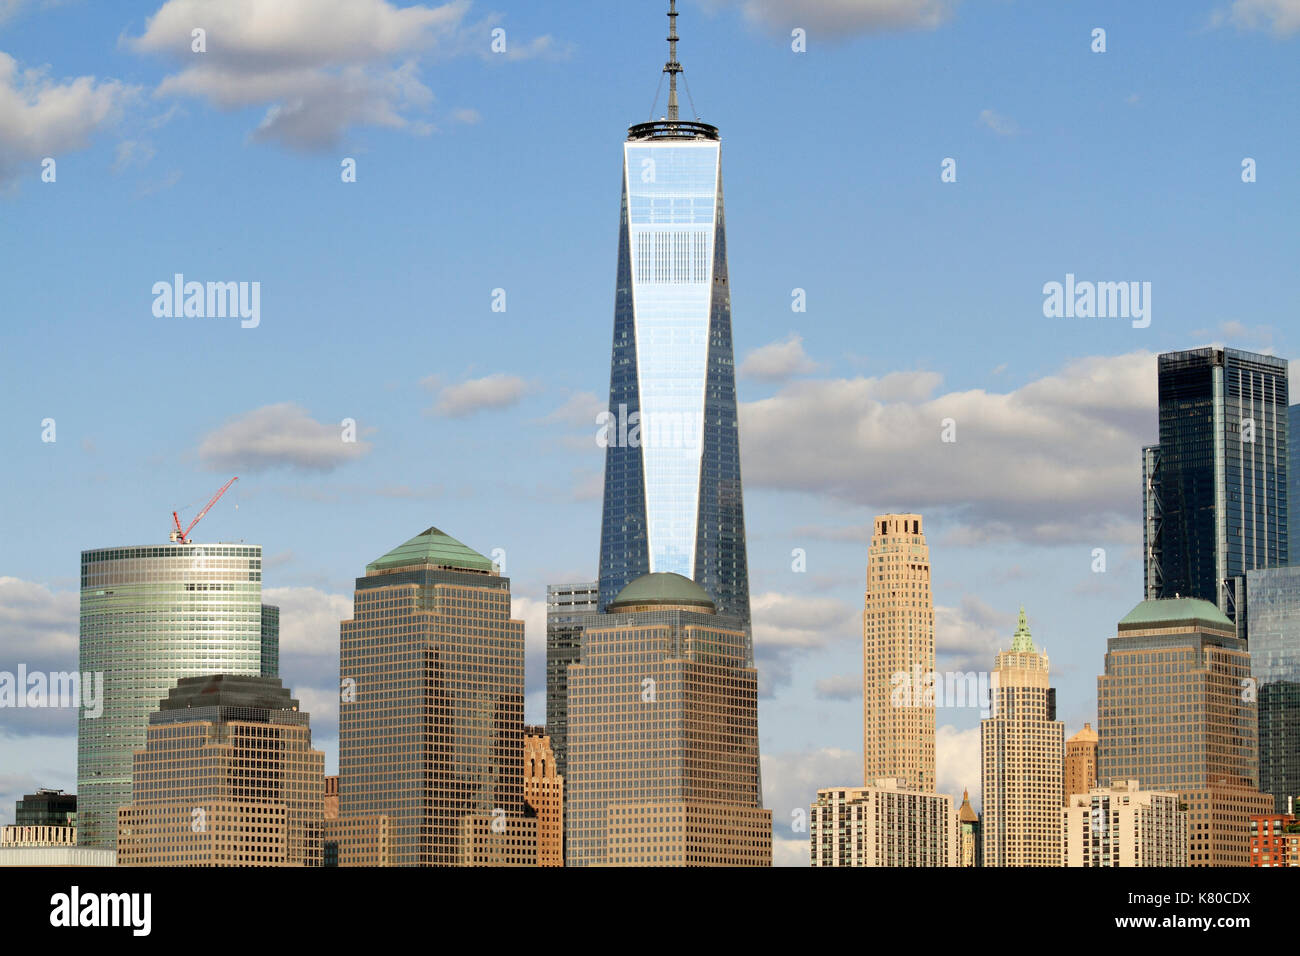 Freedom Tower and Lower Manhattan as viewed from Liberty State Park, Jersey City, New Jersey, USA - Stock Image